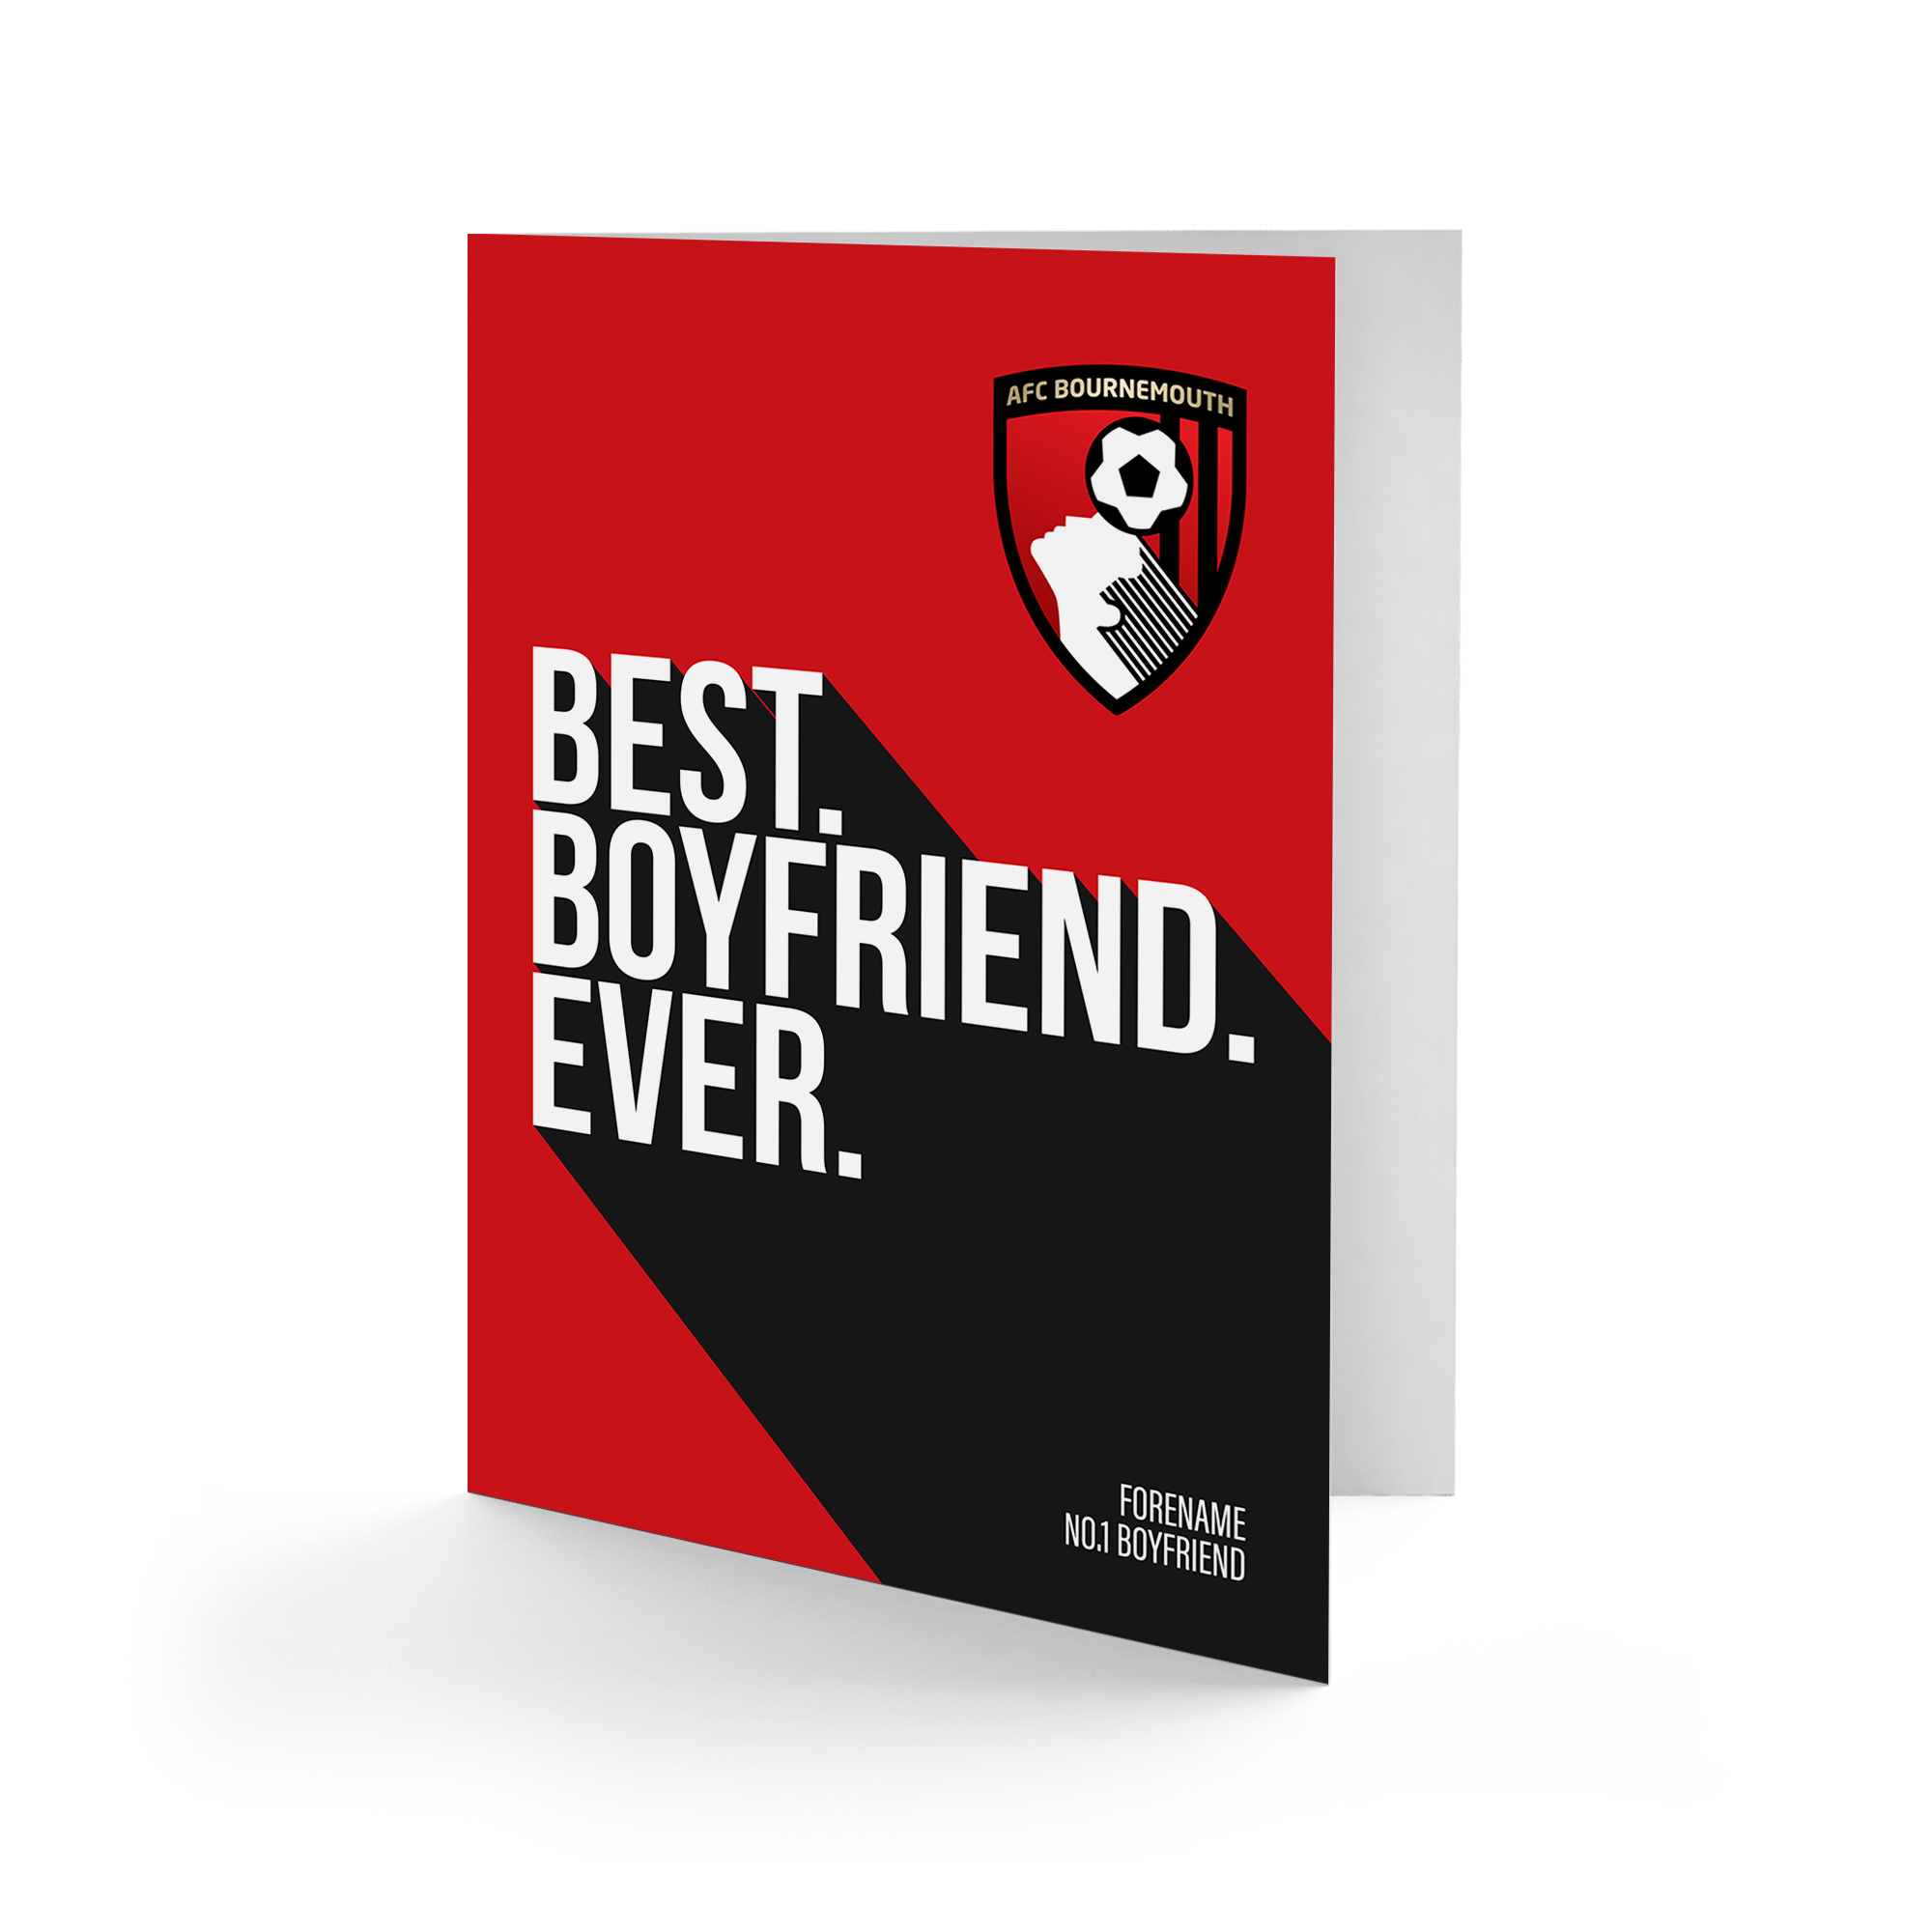 AFC Bournemouth Best Boyfriend Ever Card